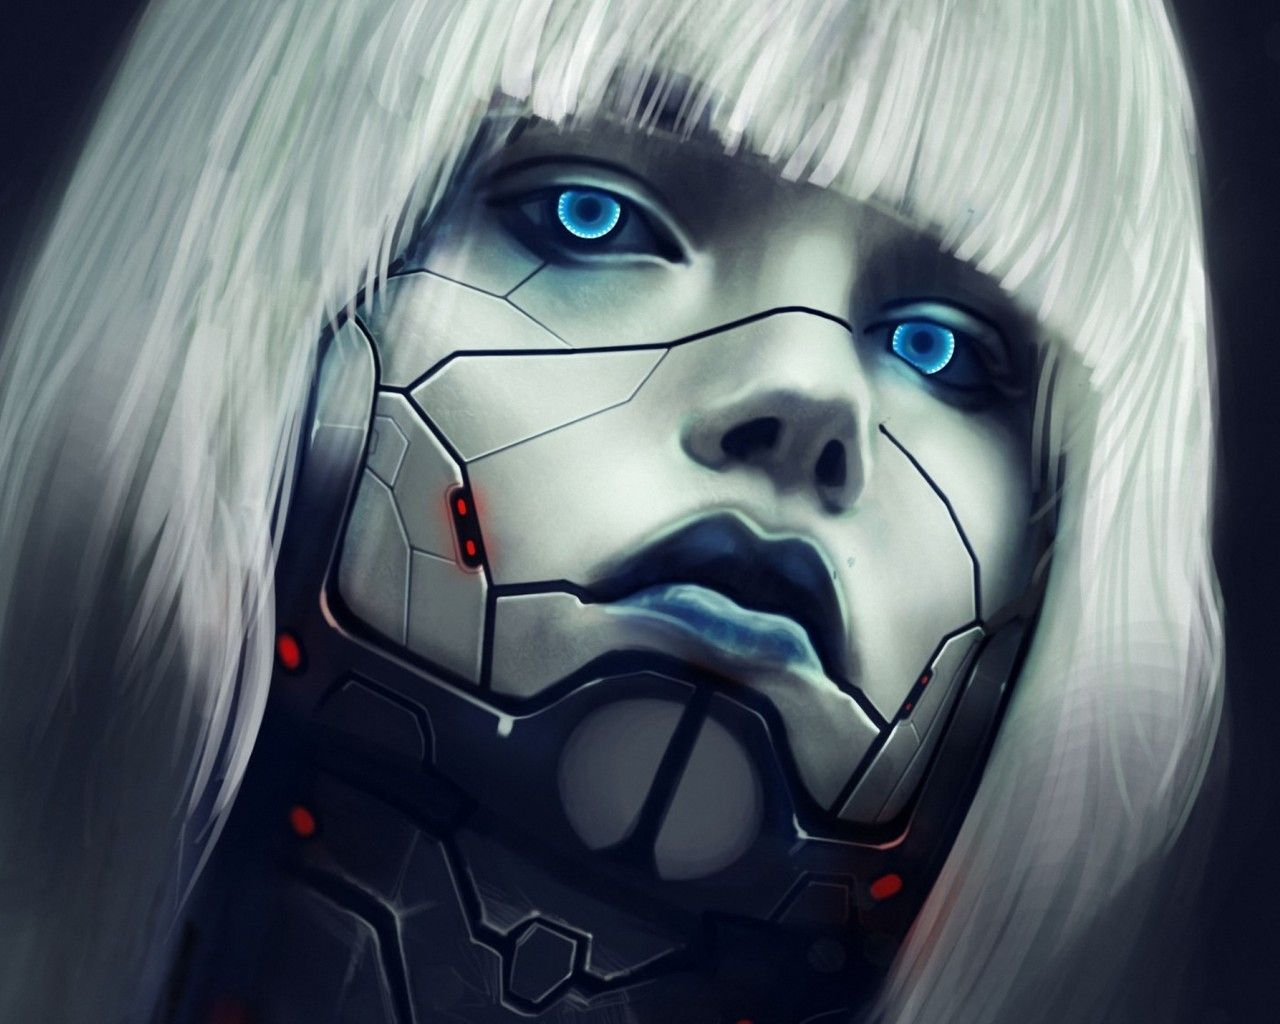 Writing prompt: Close-up of the cracked face of an android woman. Blue eyes shine out from beneath a ragged white fringe of hair.